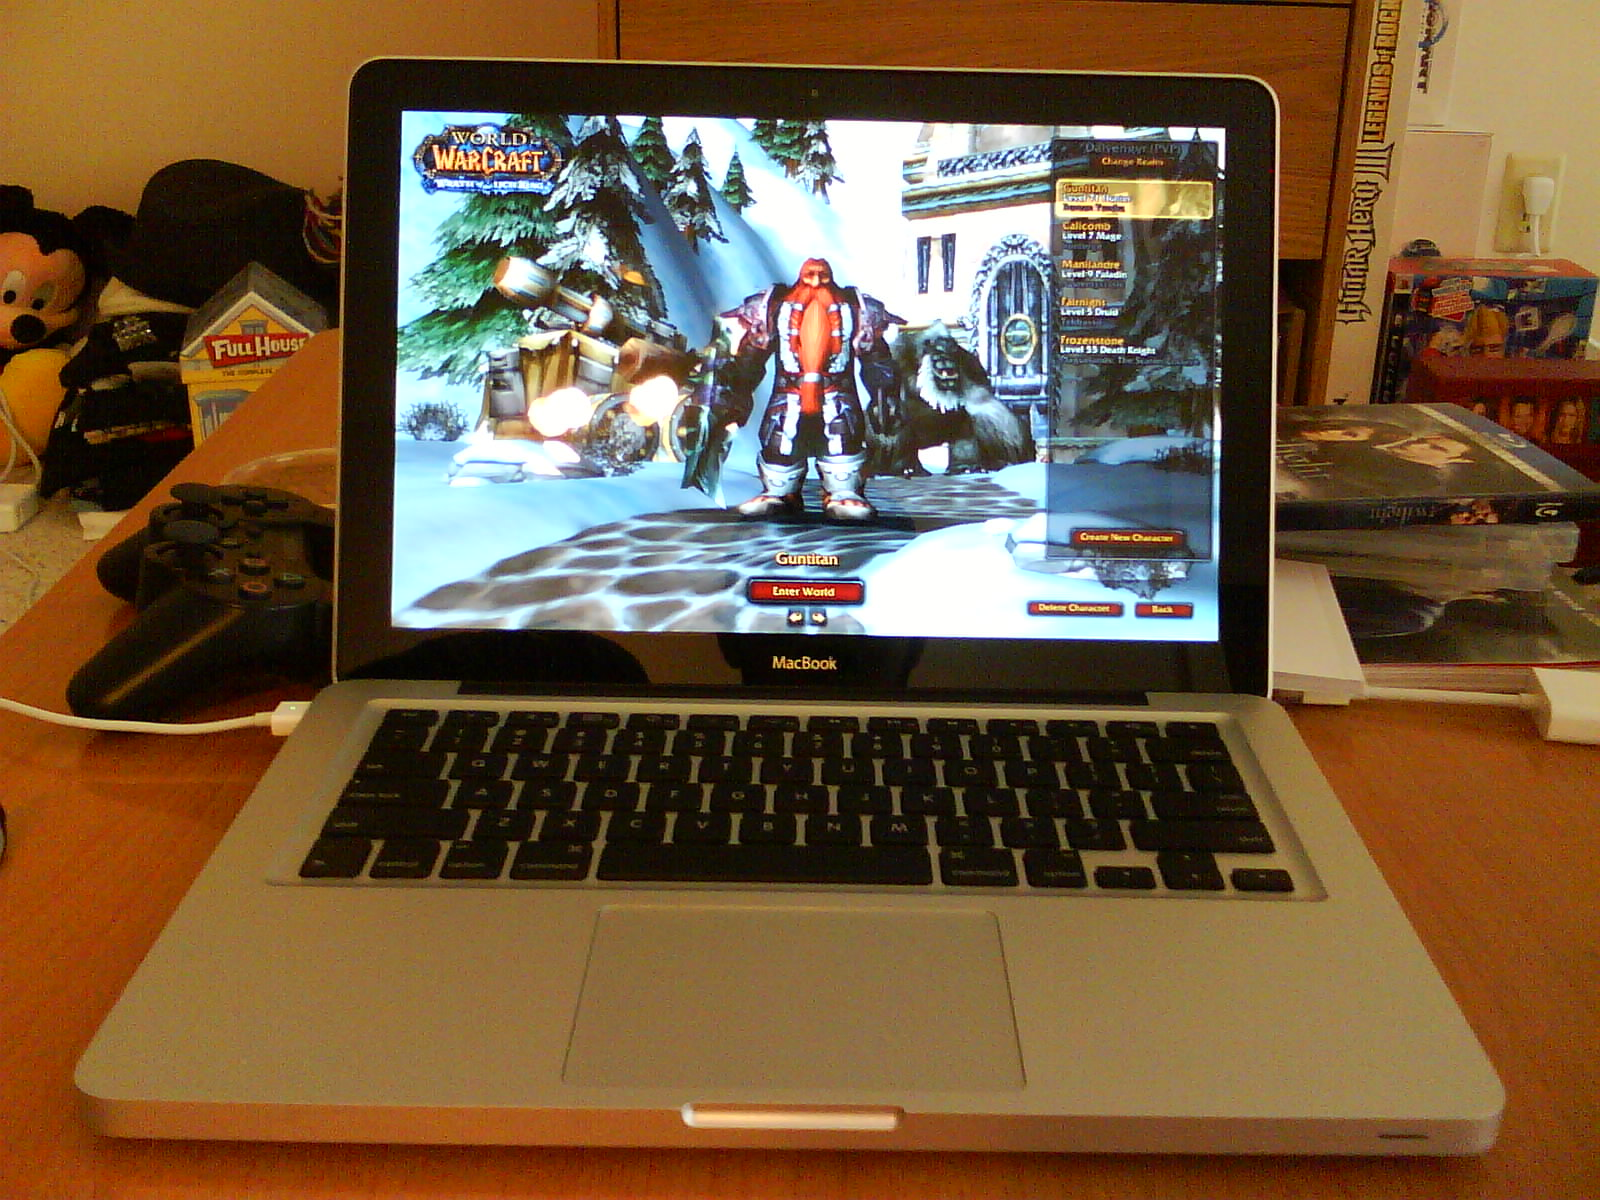 MacBook out of box with WoW running